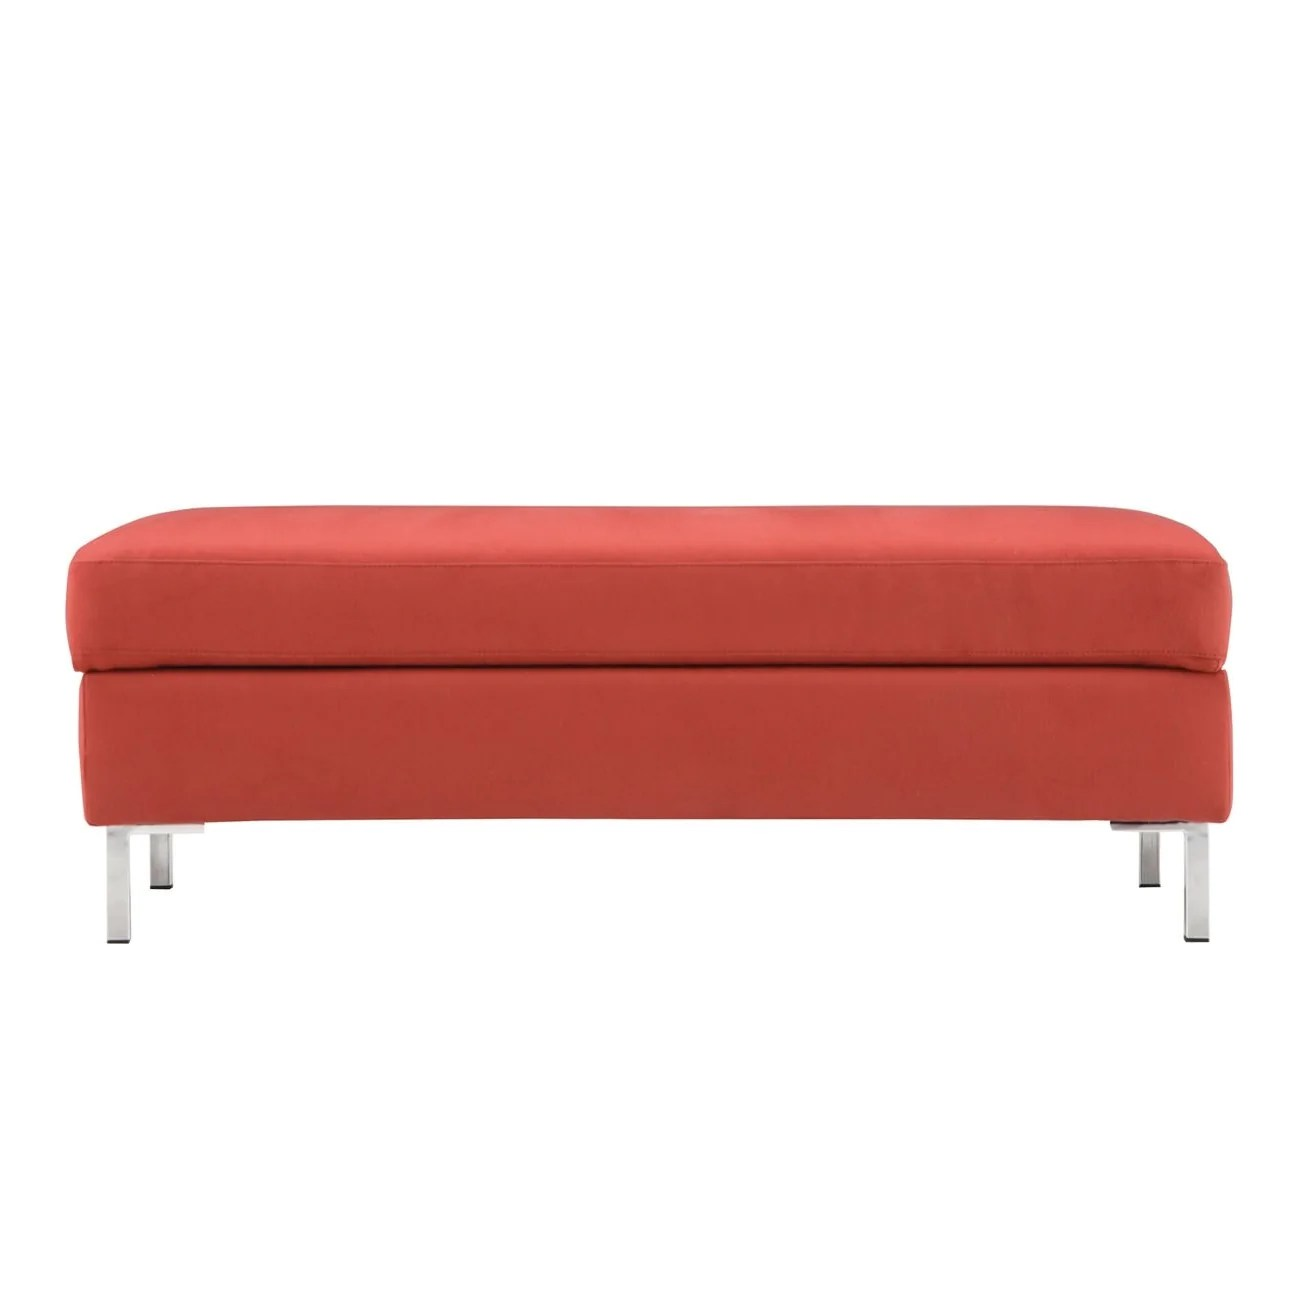 storage ottoman sound chair lowes patio chairs clearance ottomans benches plus modern design salema fabric